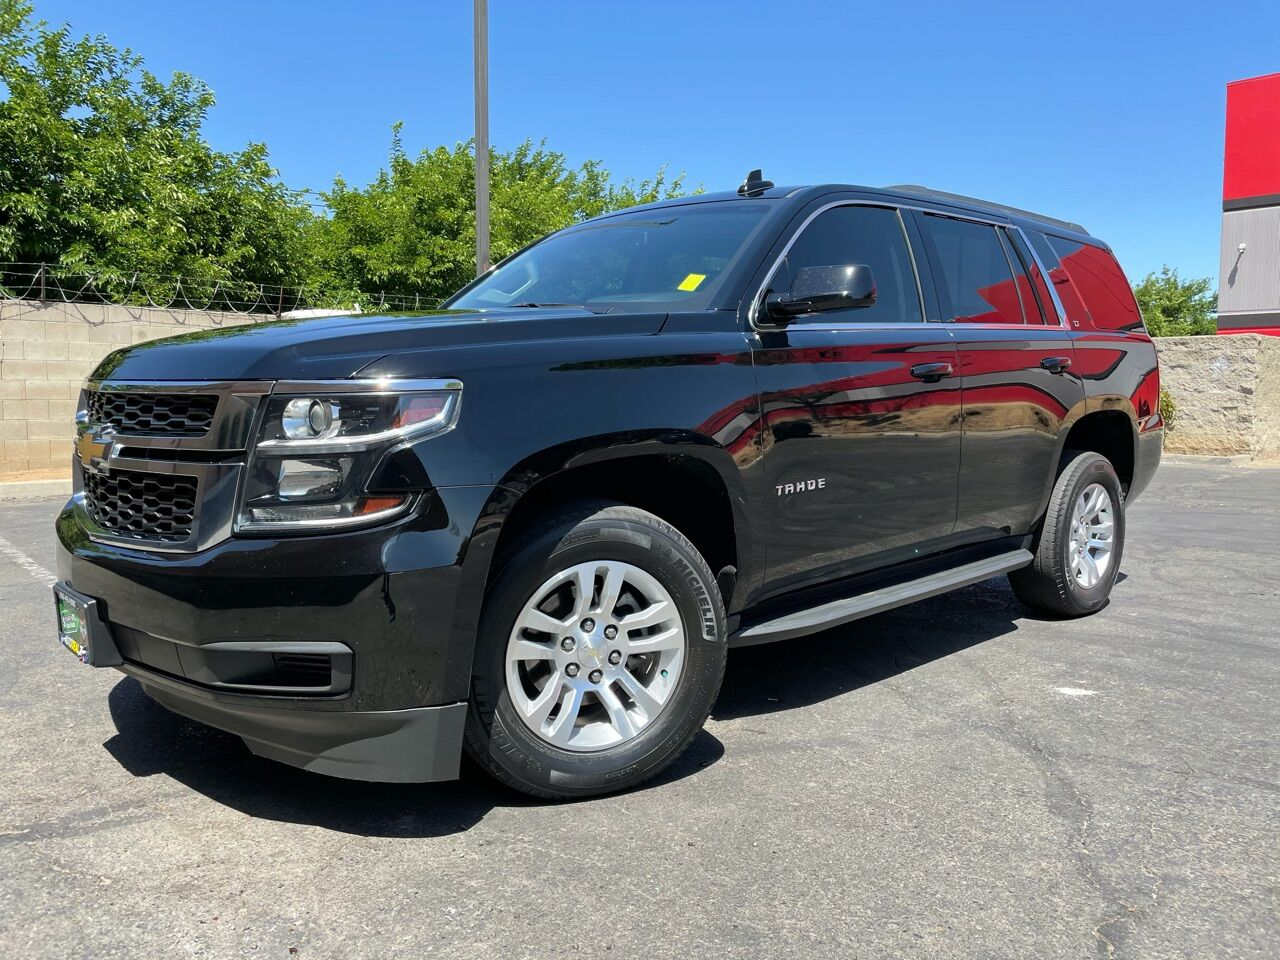 Pre-Owned 2018 Chevrolet Tahoe LT 4x2 4dr SUV Rear Wheel Drive SUV